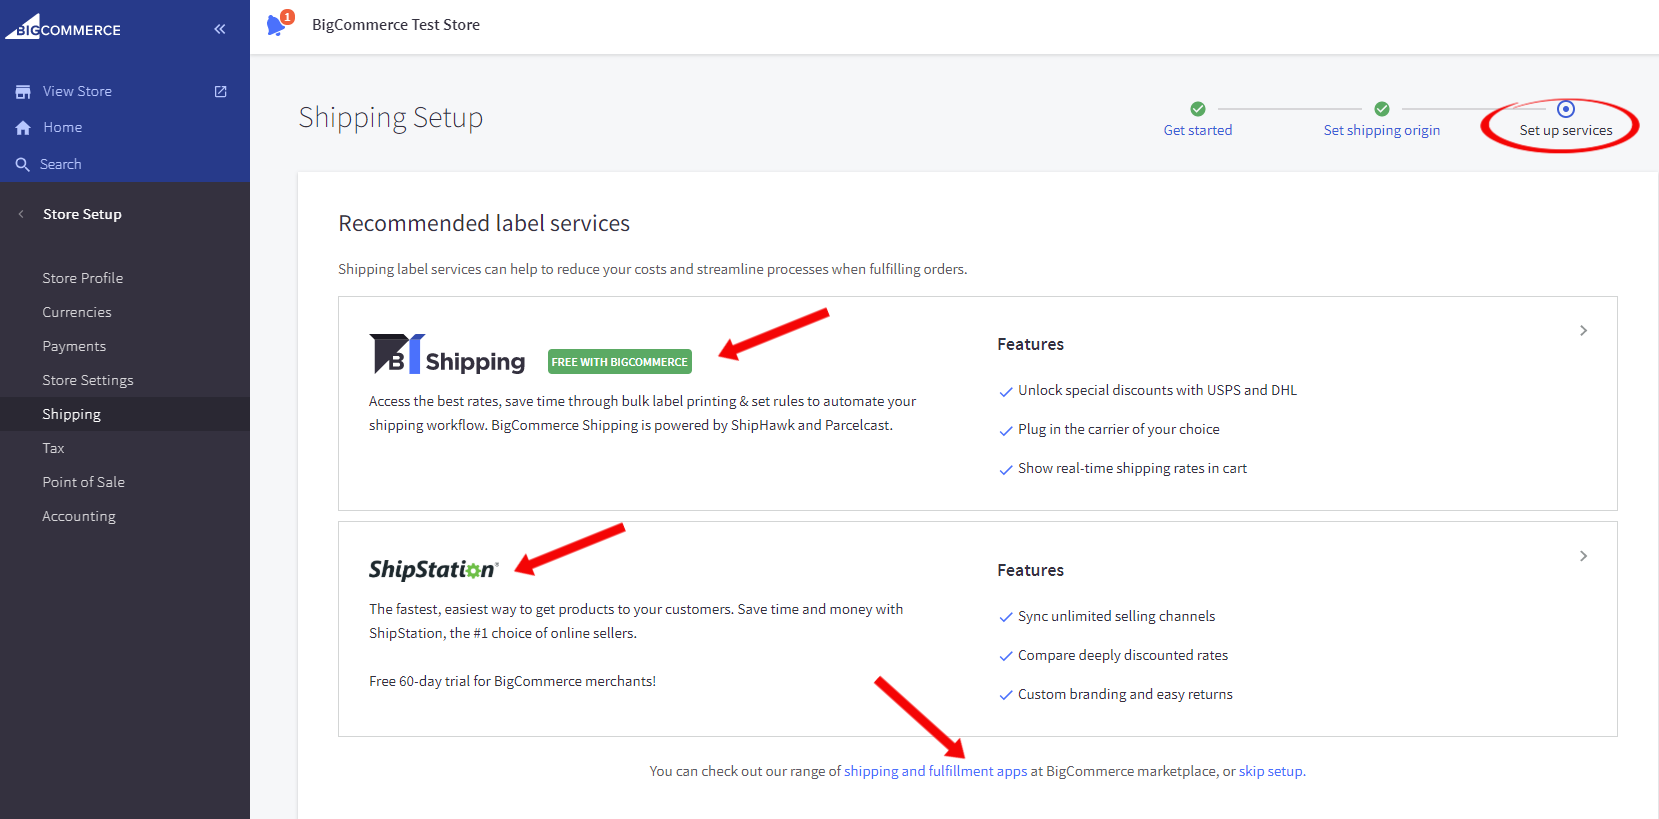 Guide on how to Select Shipping Partners